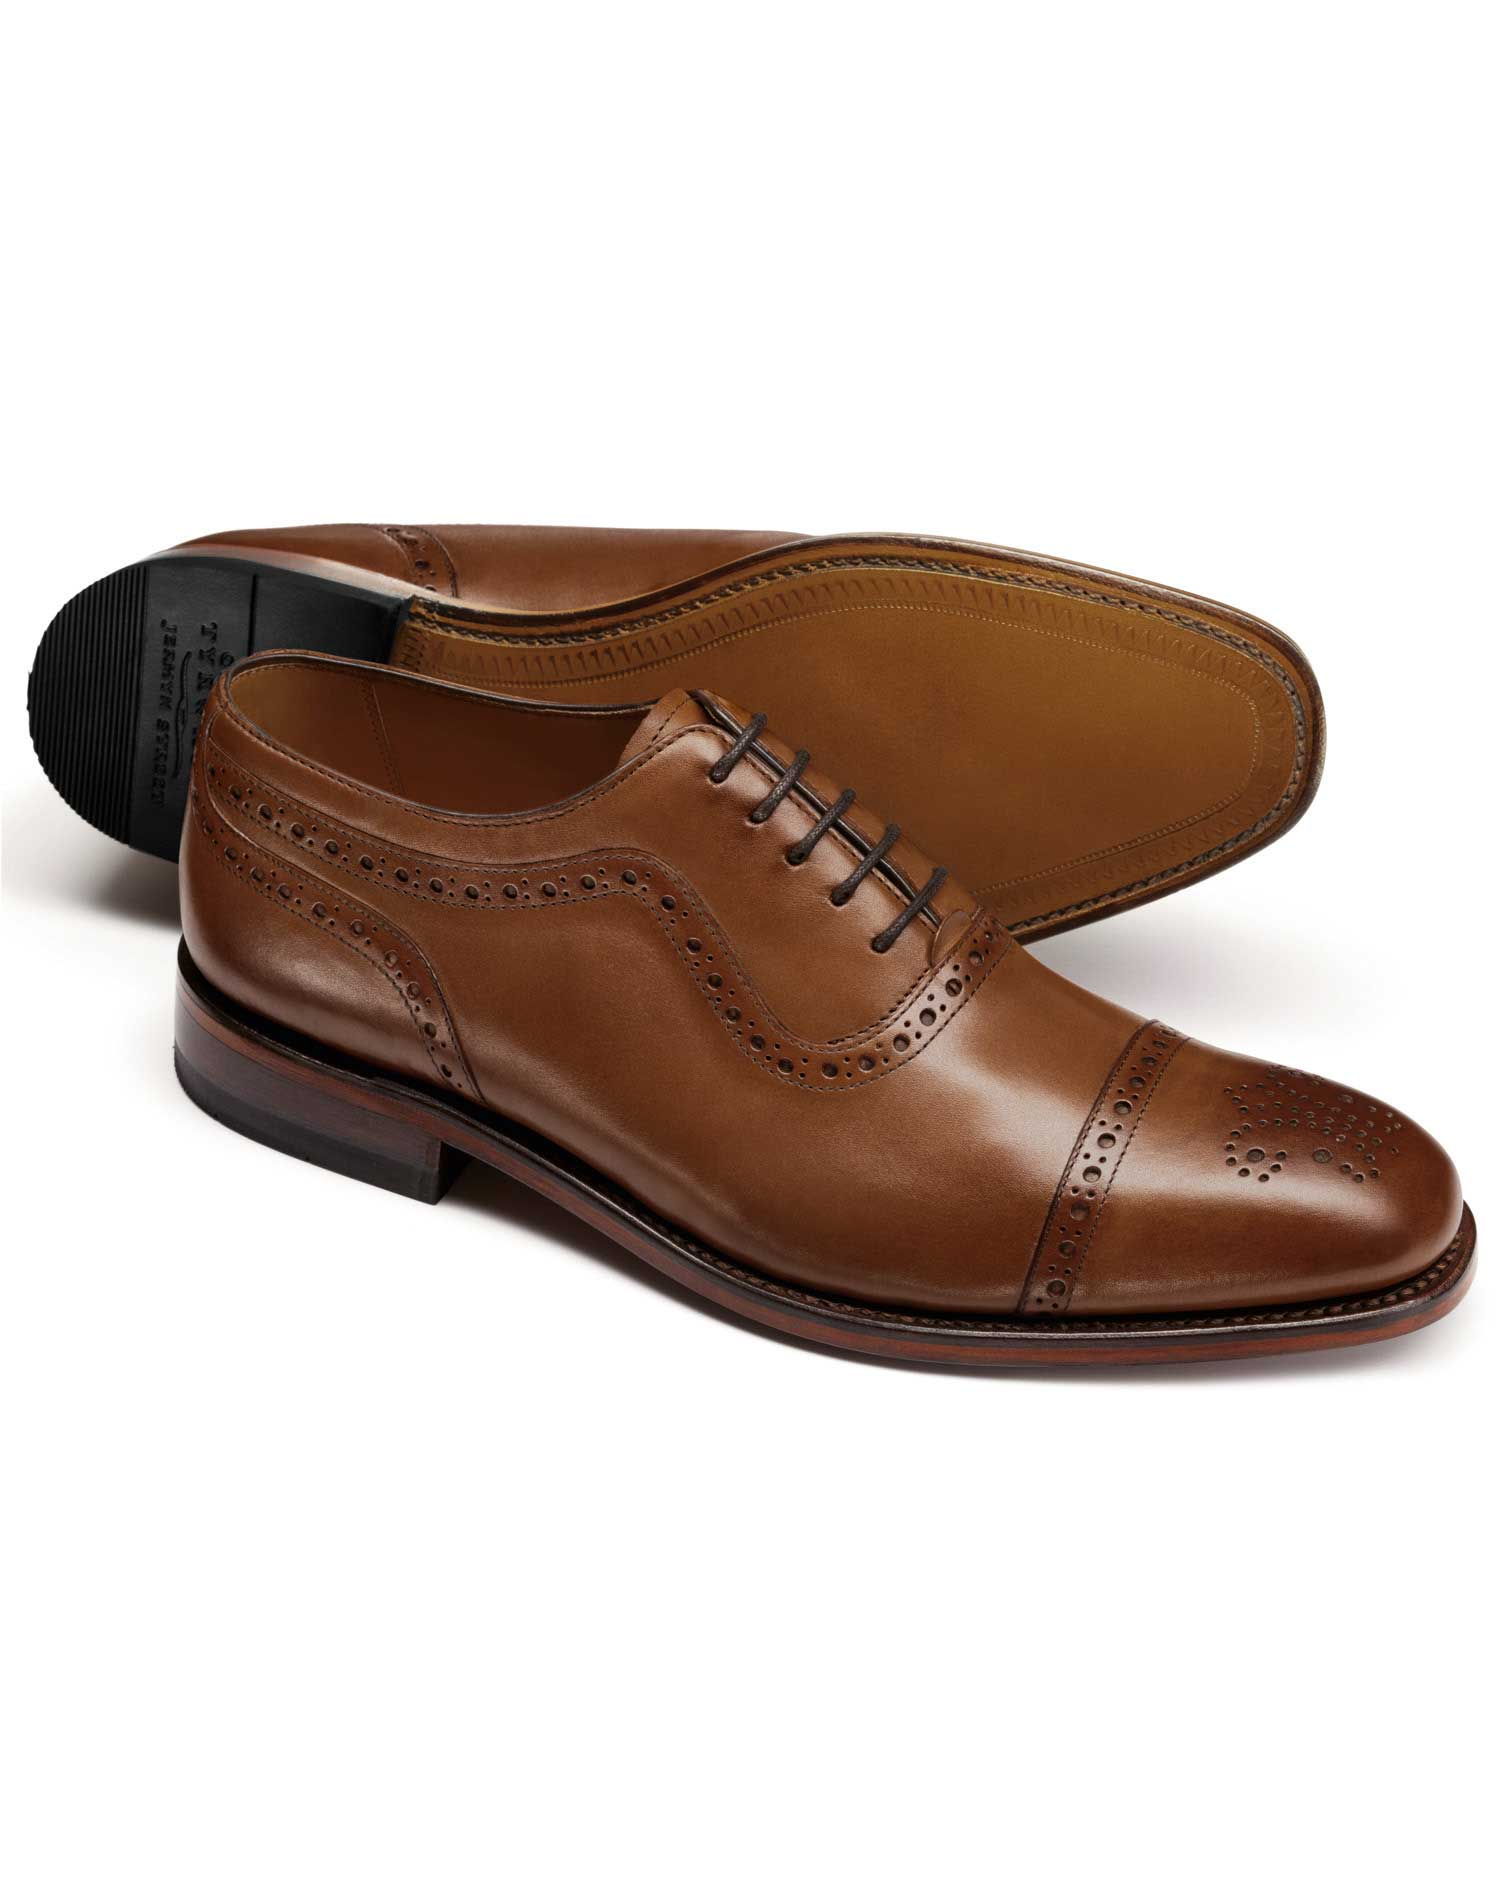 brown parker toe cap brogue oxford shoes KLWVFVP